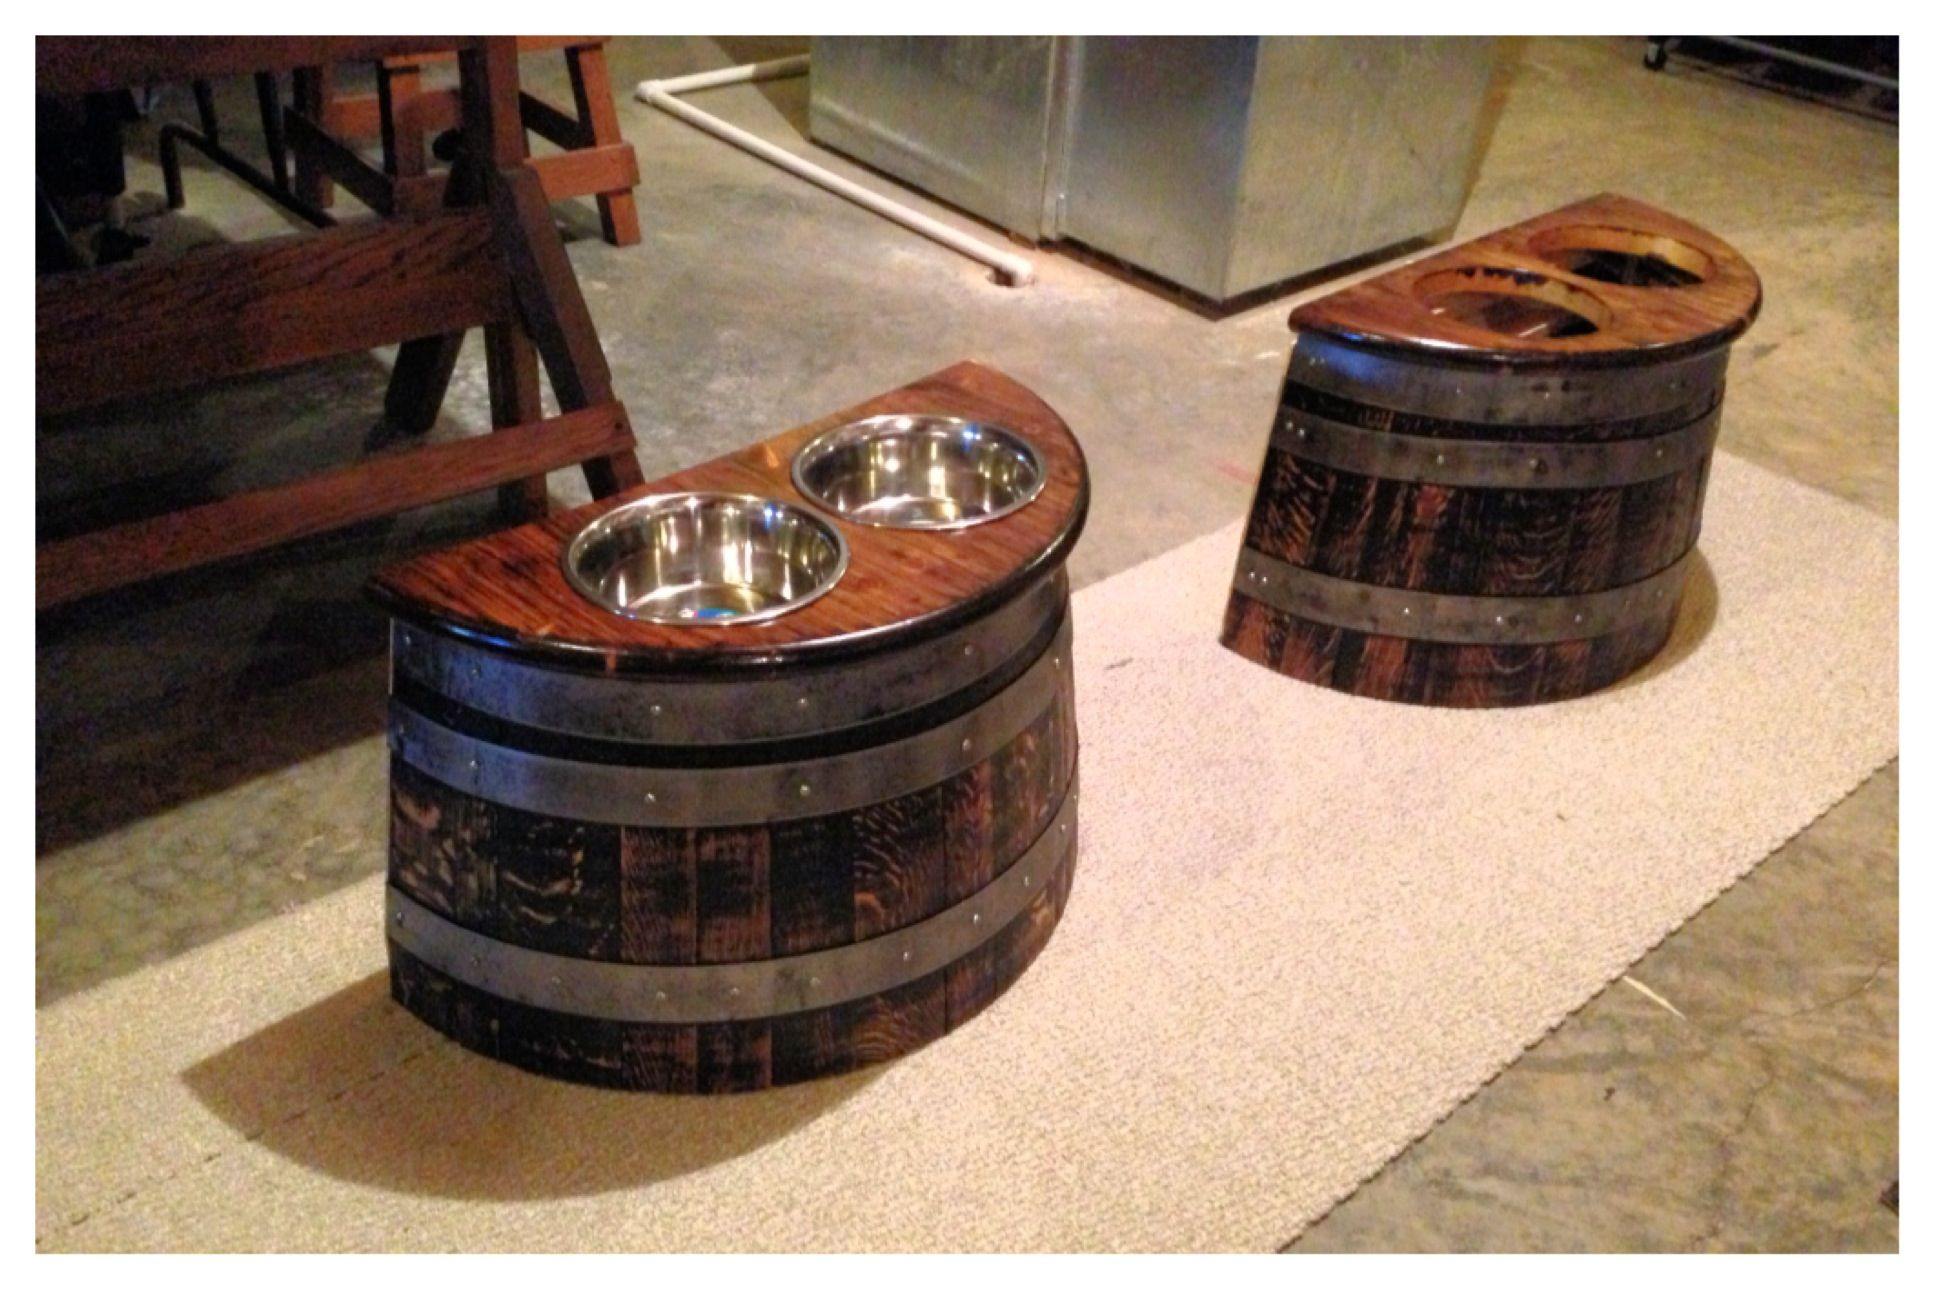 Save Over 200 Make Your Own Whiskey Barrel Dog Feeders 1 30 Whiskey Wine Barrel Planter From Lowes 50 I With Images Barrel Decor Wine Barrel Furniture Wine Barrel